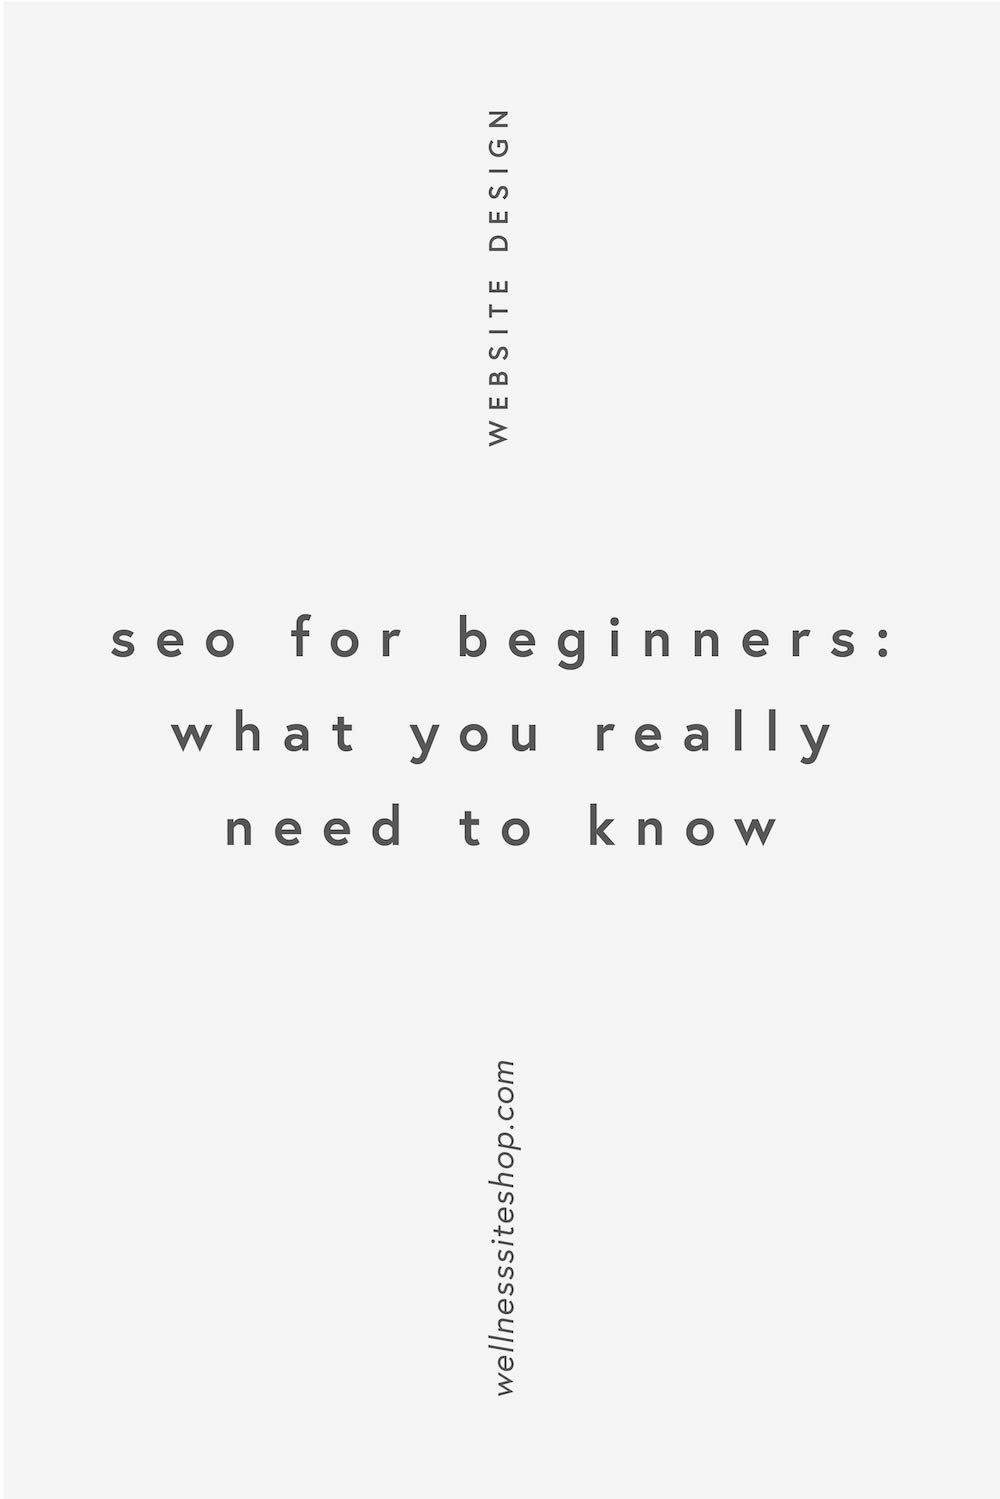 SEO for beginners: what you really need to know 3.jpg